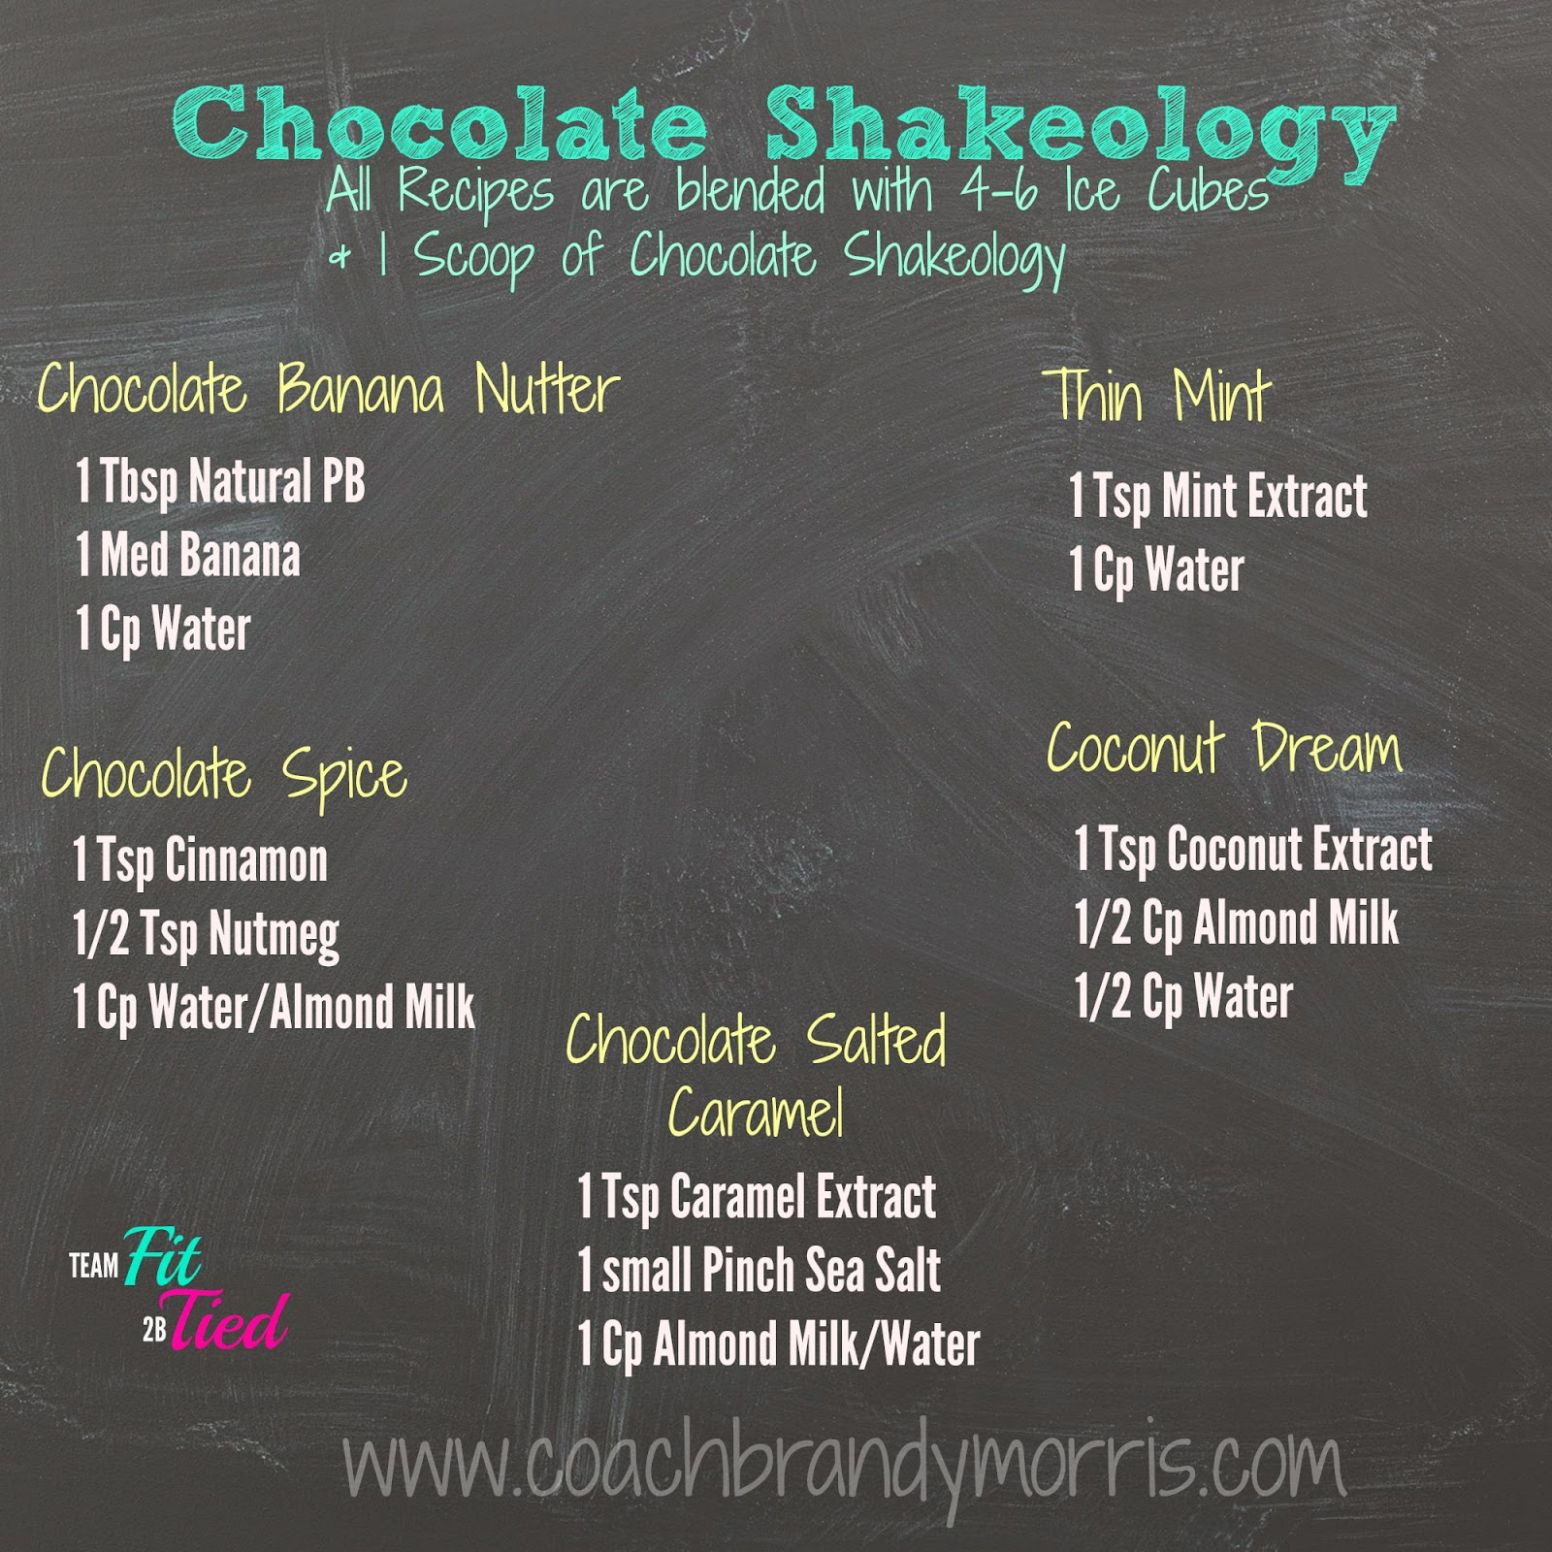 Getting Fit for Good : Chocolate Shakeology Recipes - Recipes Chocolate Shakeology